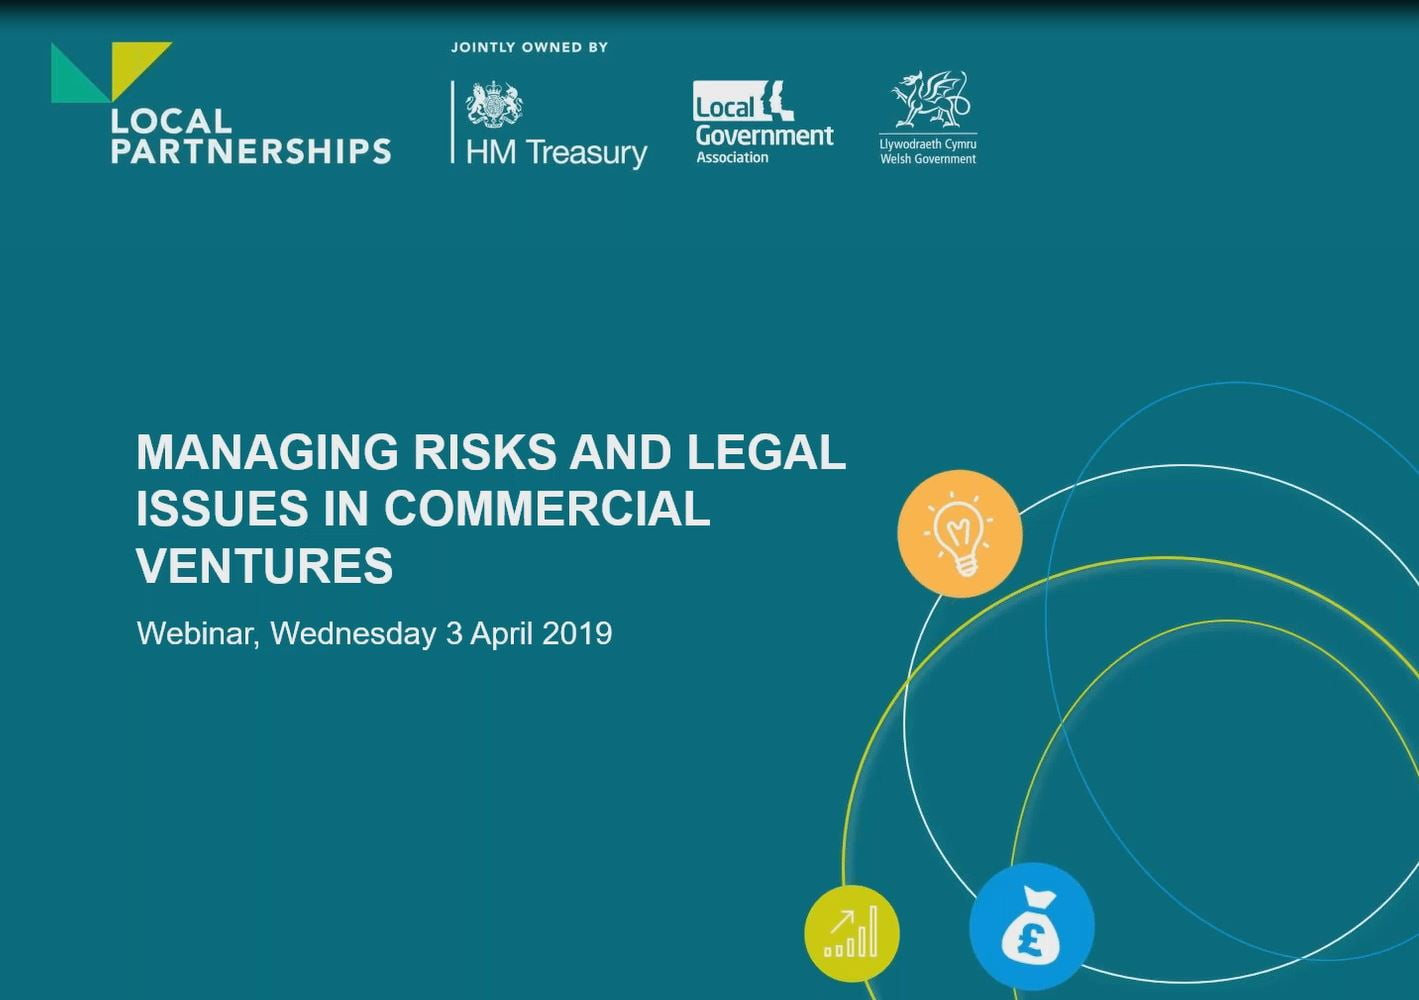 WEBINAR: Managing risks and legal issues in commercial ventures